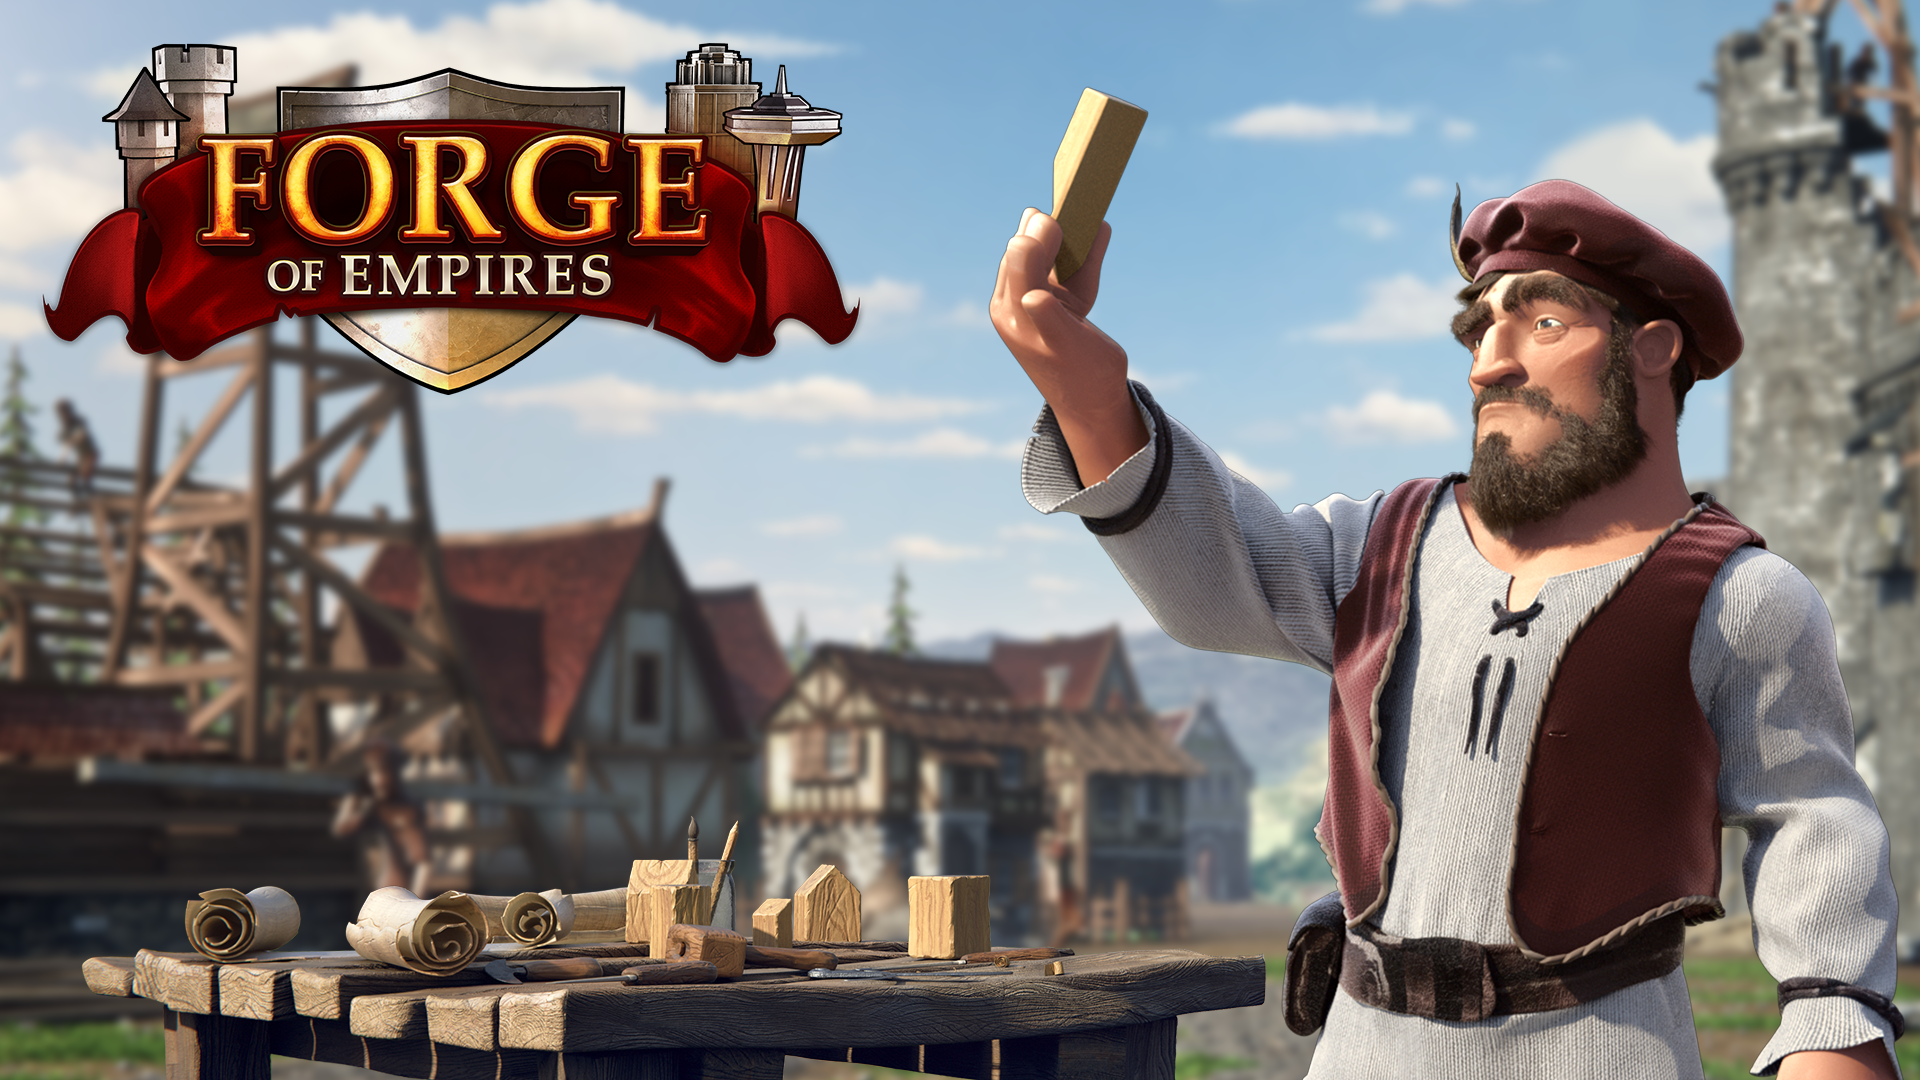 Forge of Empires: Amazon.co.uk: Appstore for Android